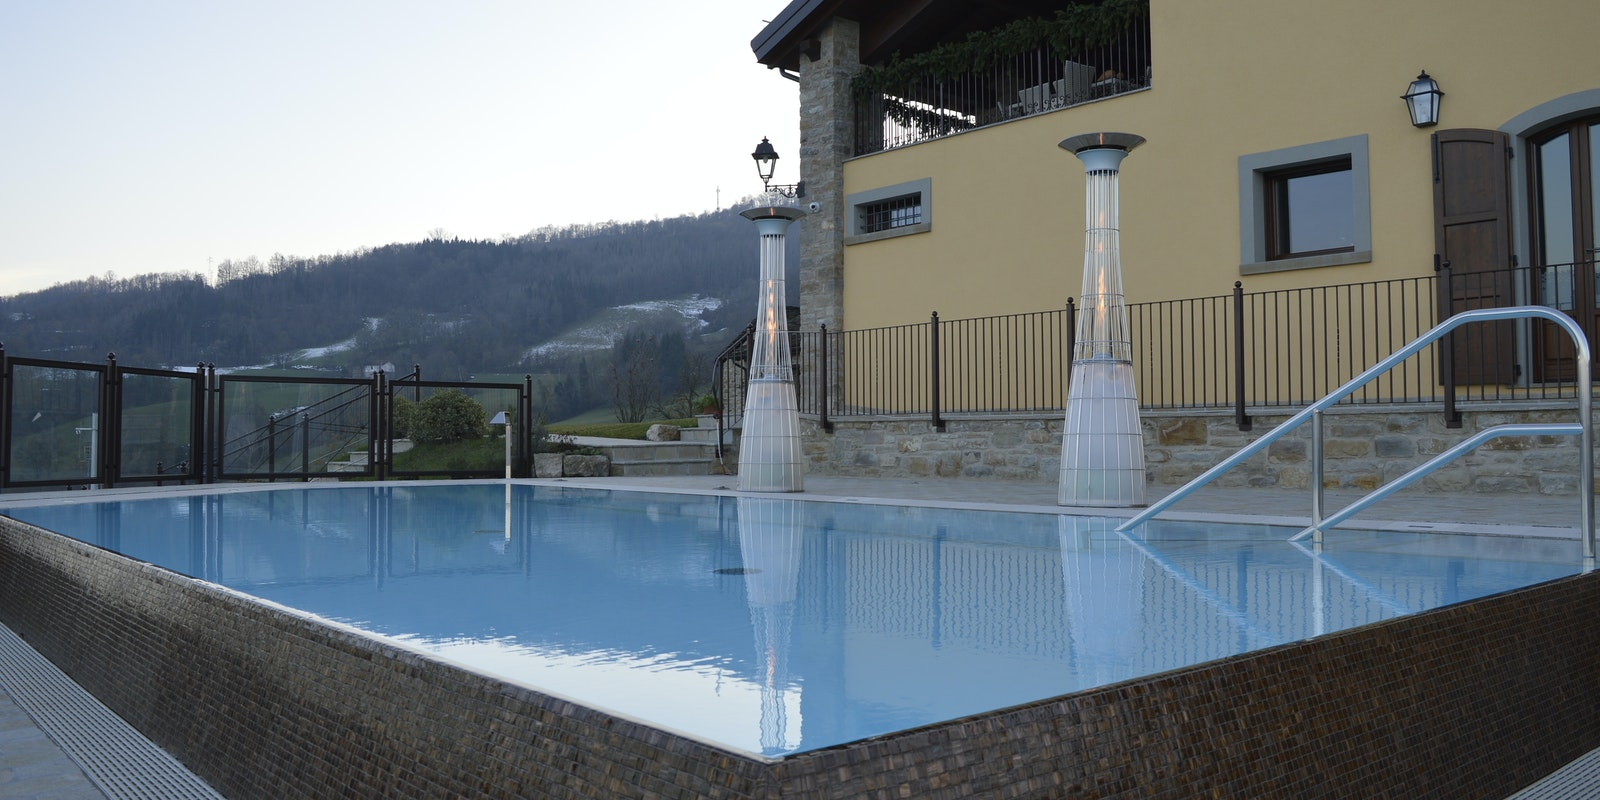 Riscaldatori a gas DolceVita LightFire a bordo piscina